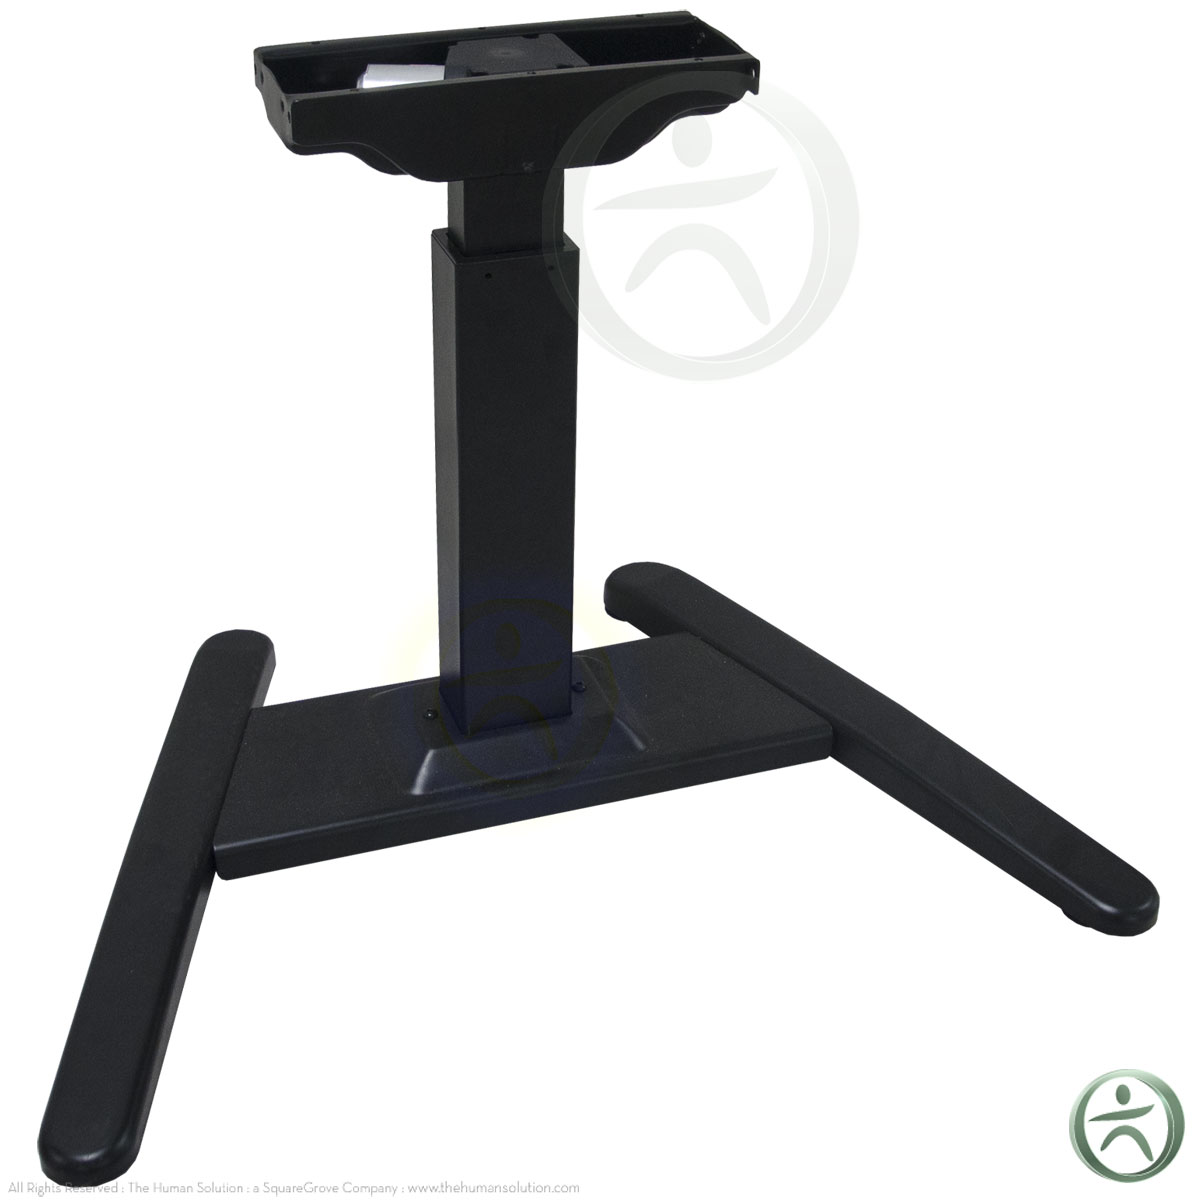 Shop Uplift 970 Sit Stand Desks With Premium Bamboo Tops